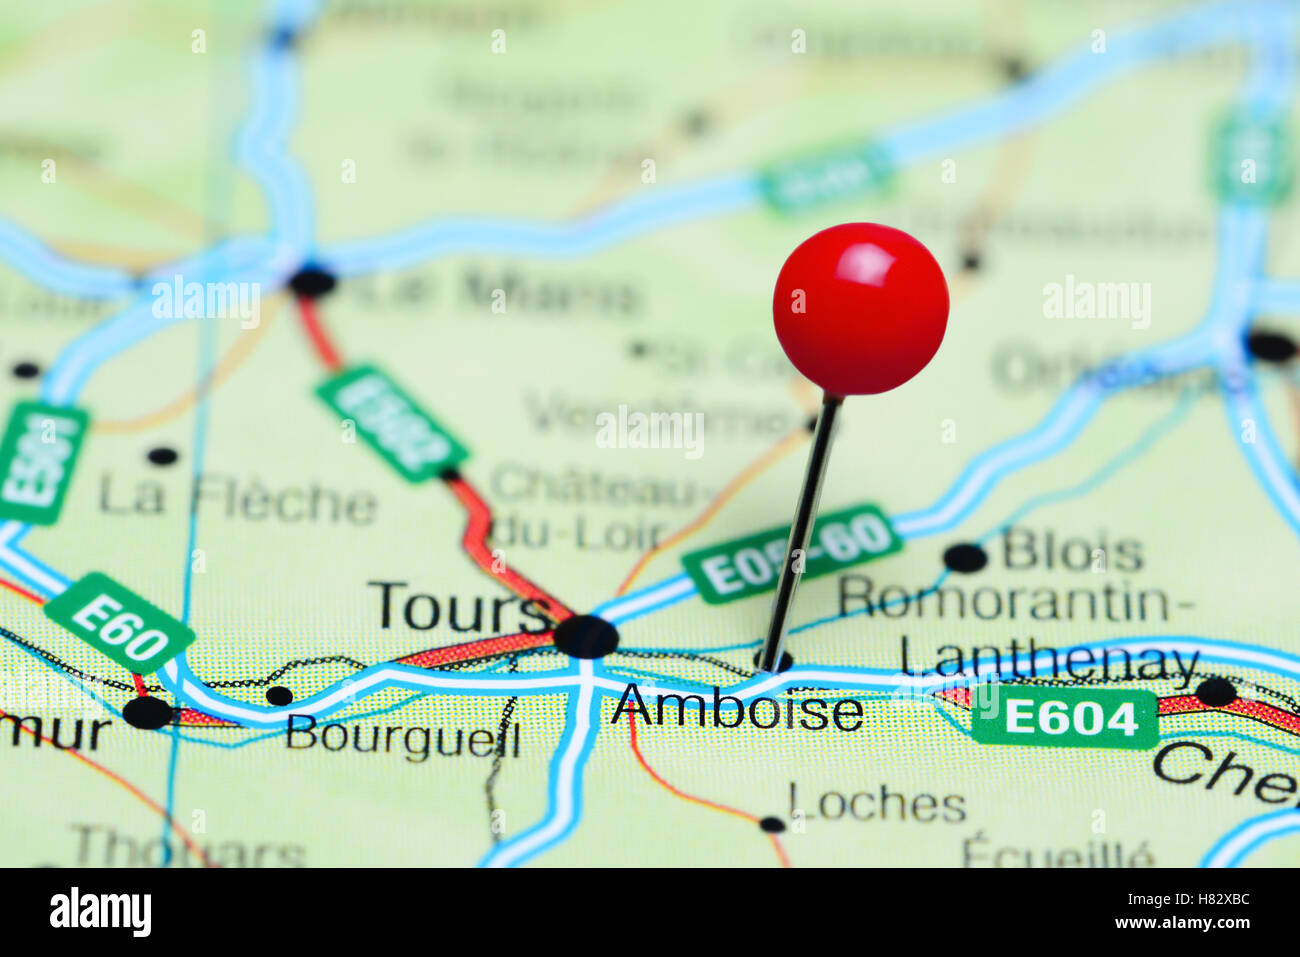 Amboise Pinned On A Map Of France Stock Photo 125454432 Alamy